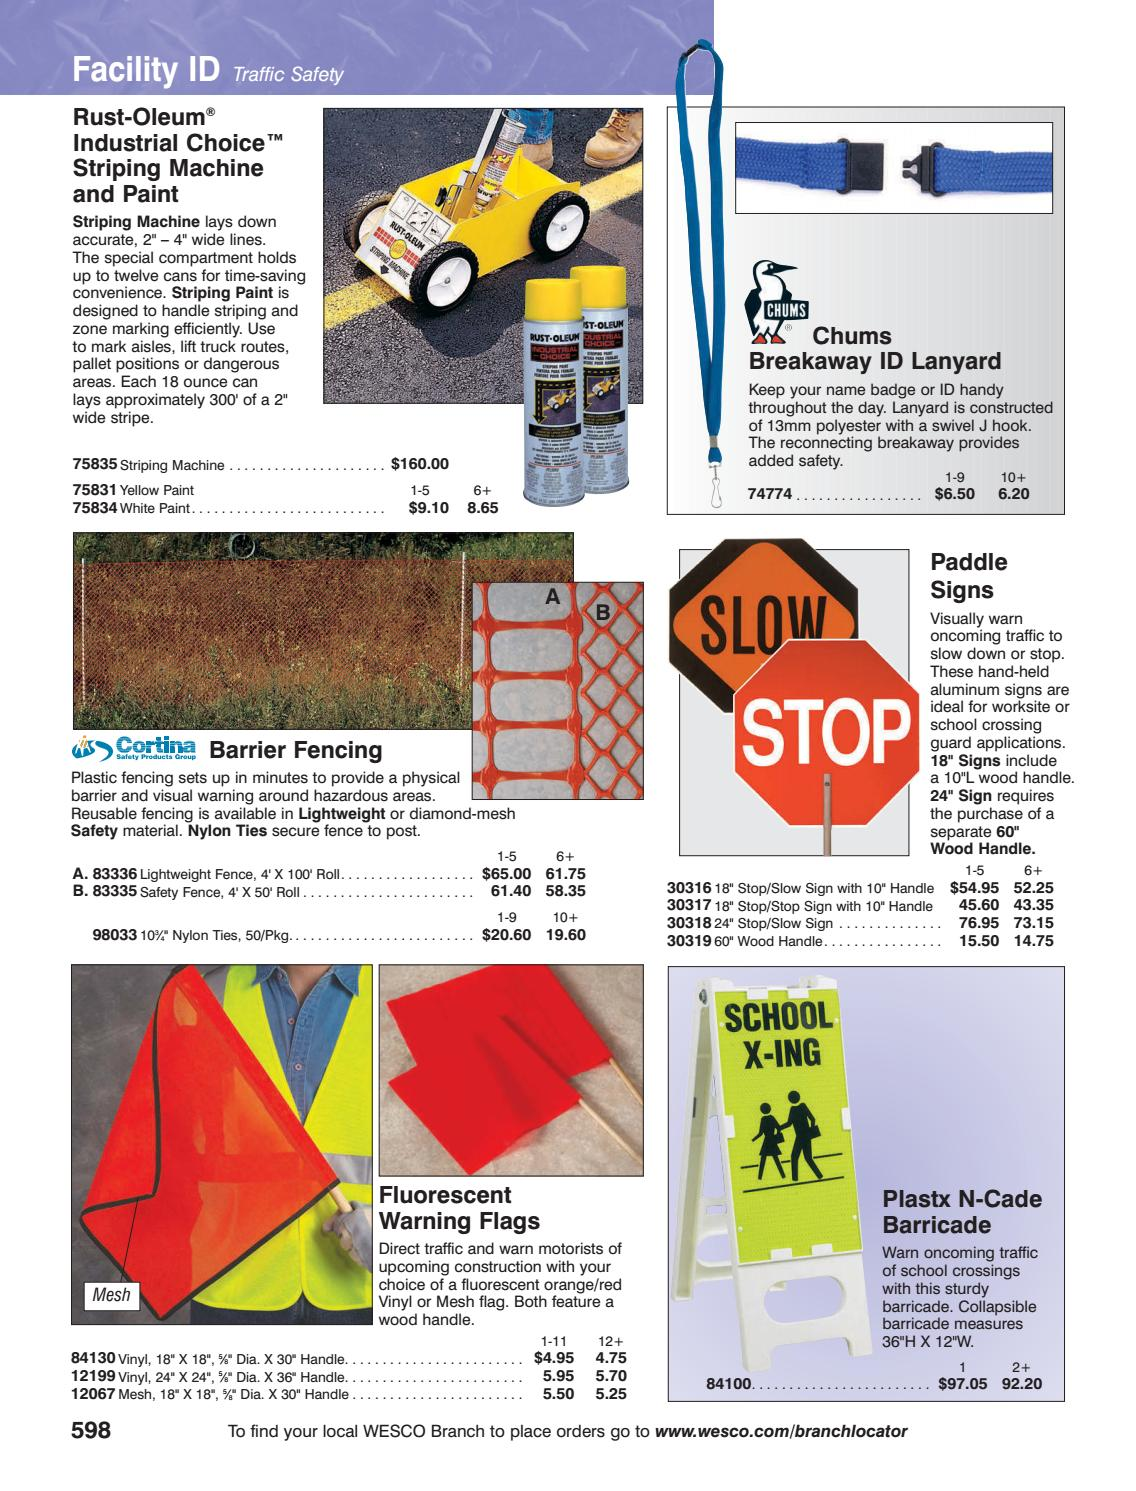 WESCO Safety Products Buyers Guide by WESCO Distribution - issuu